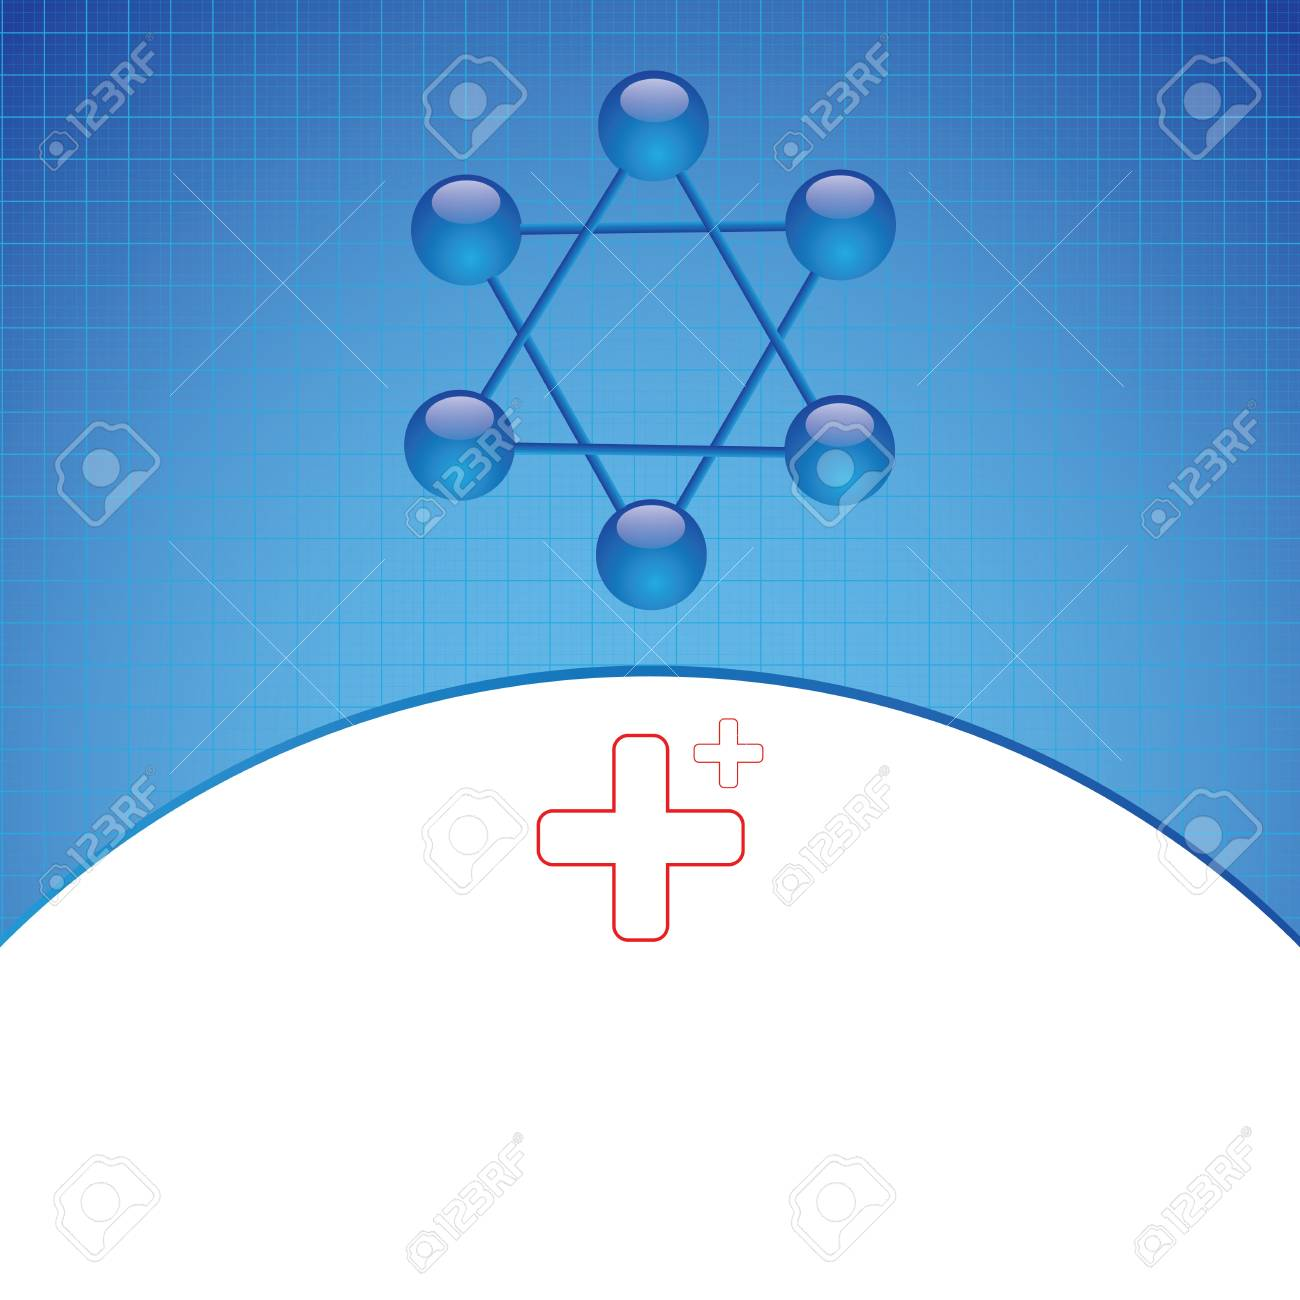 Molecule illustration blue background Stock Vector - 16113686